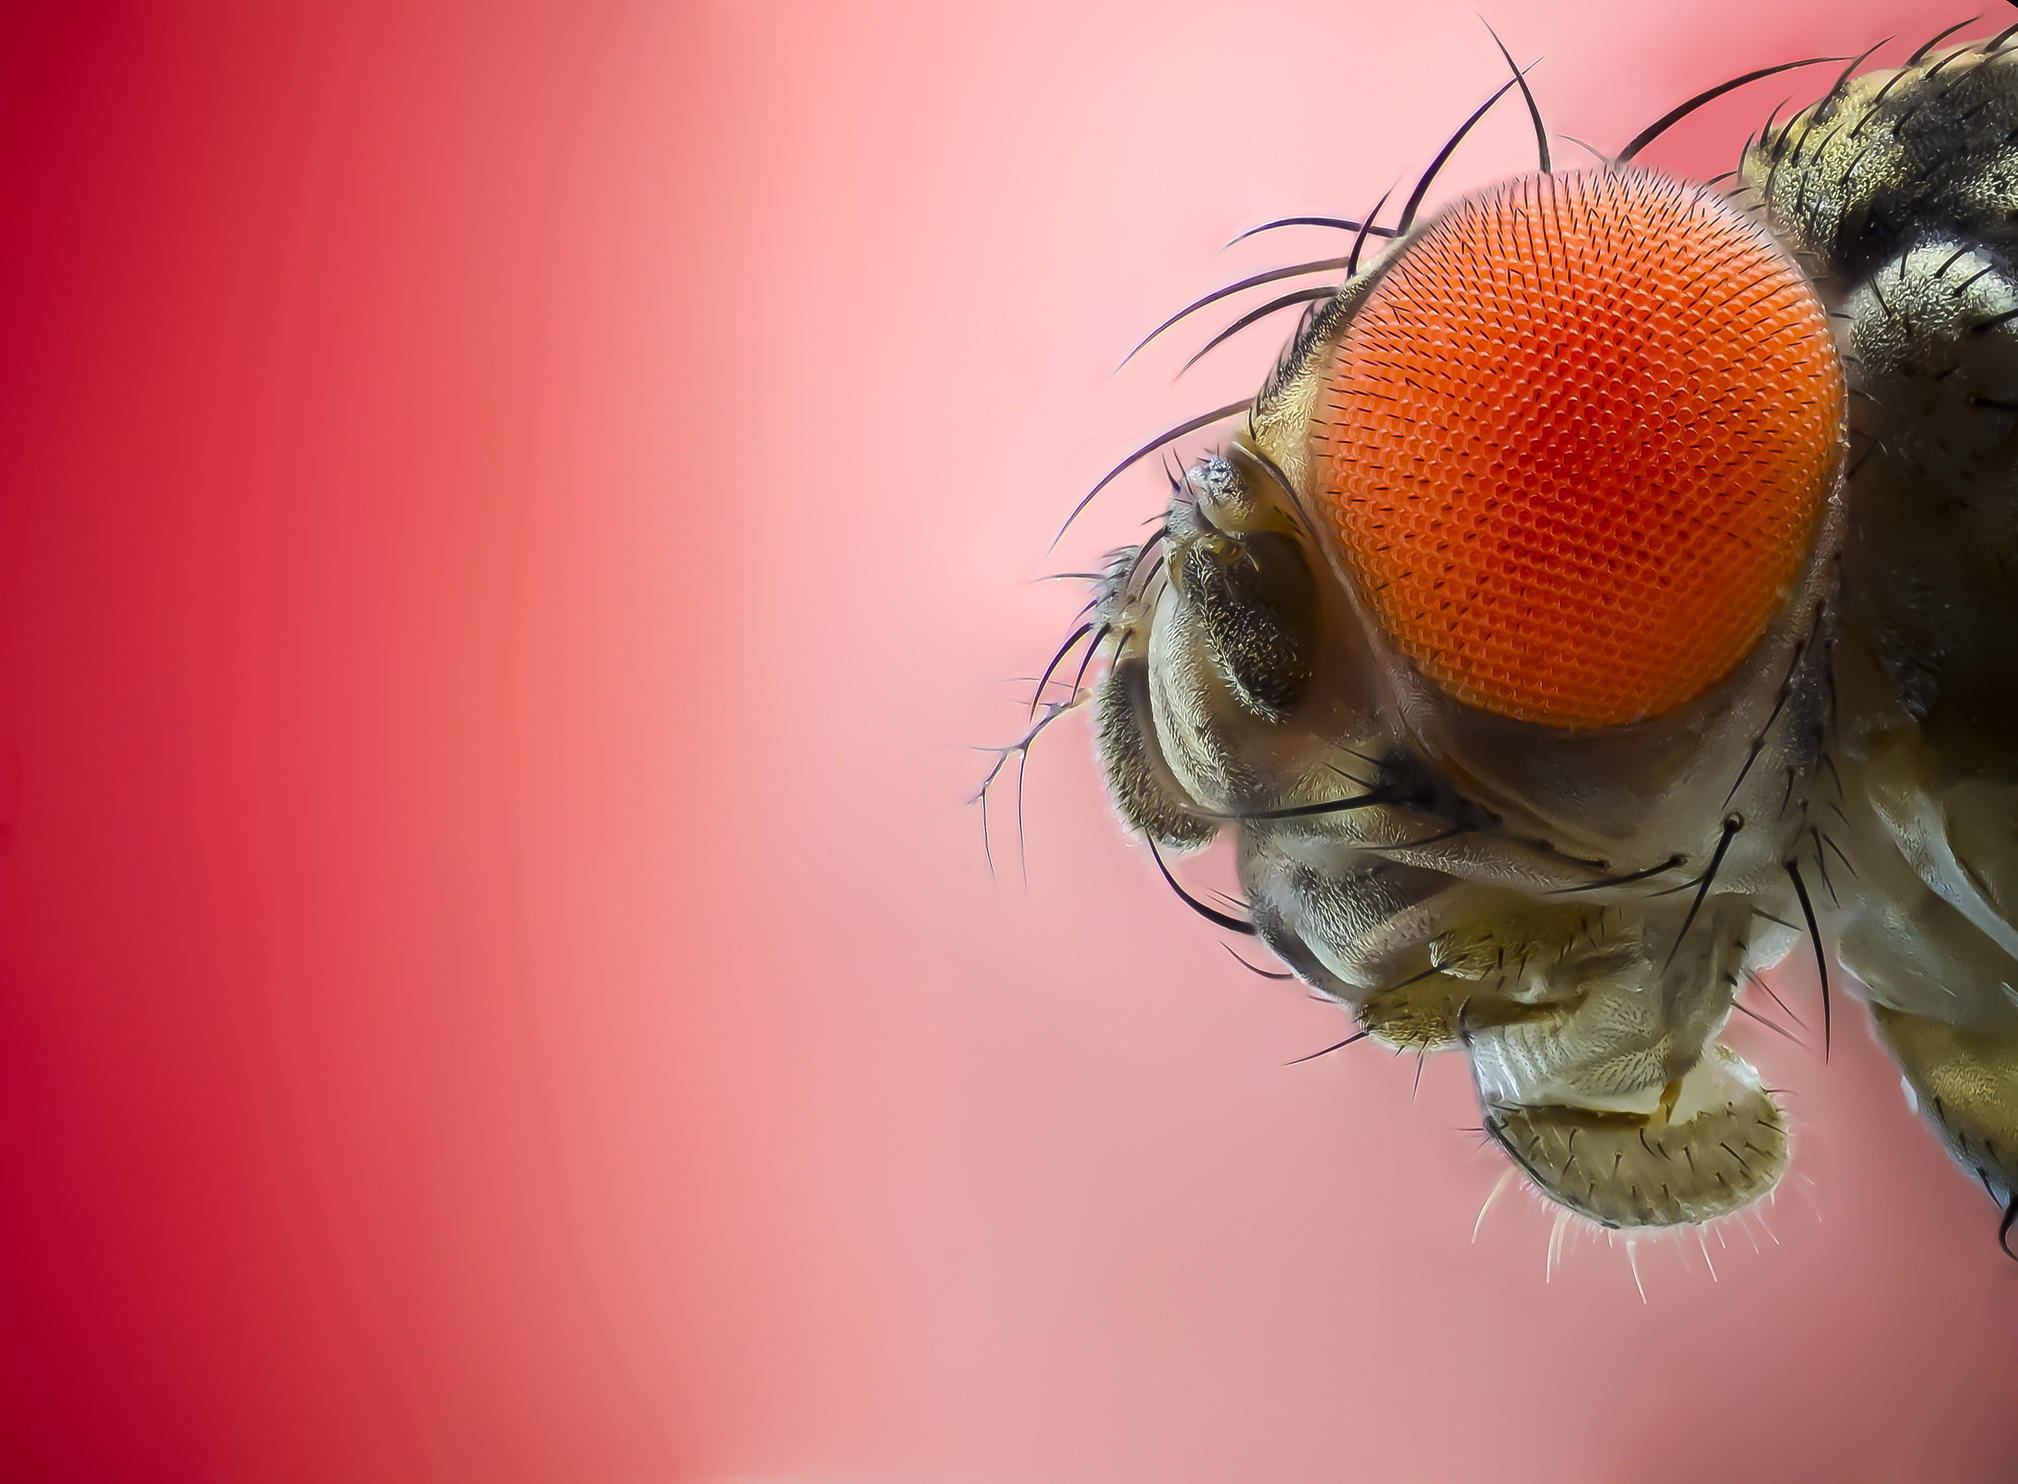 Bugged By Insects? 'Buzz, Sting, Bite' Makes The Case For 6